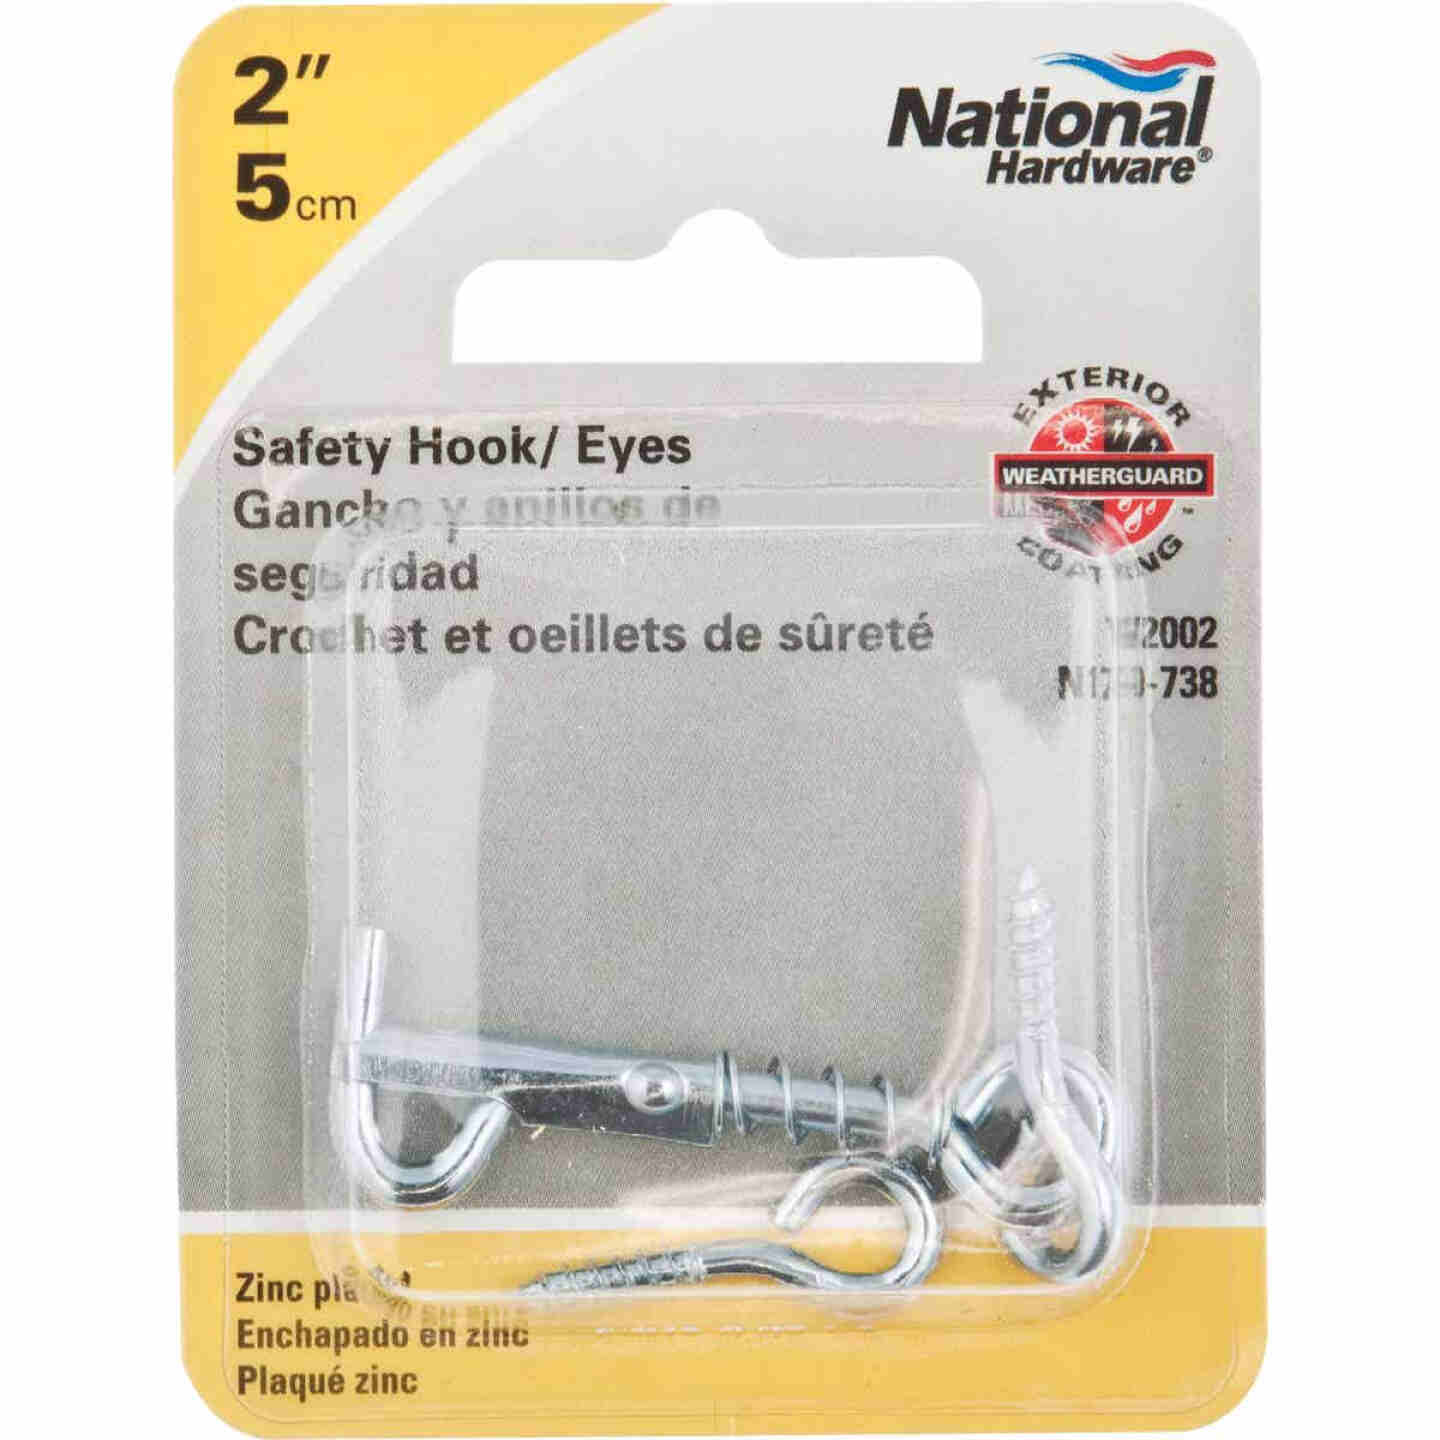 National Steel 2 In. Safety Gate Hook & Eye Bolt Image 2